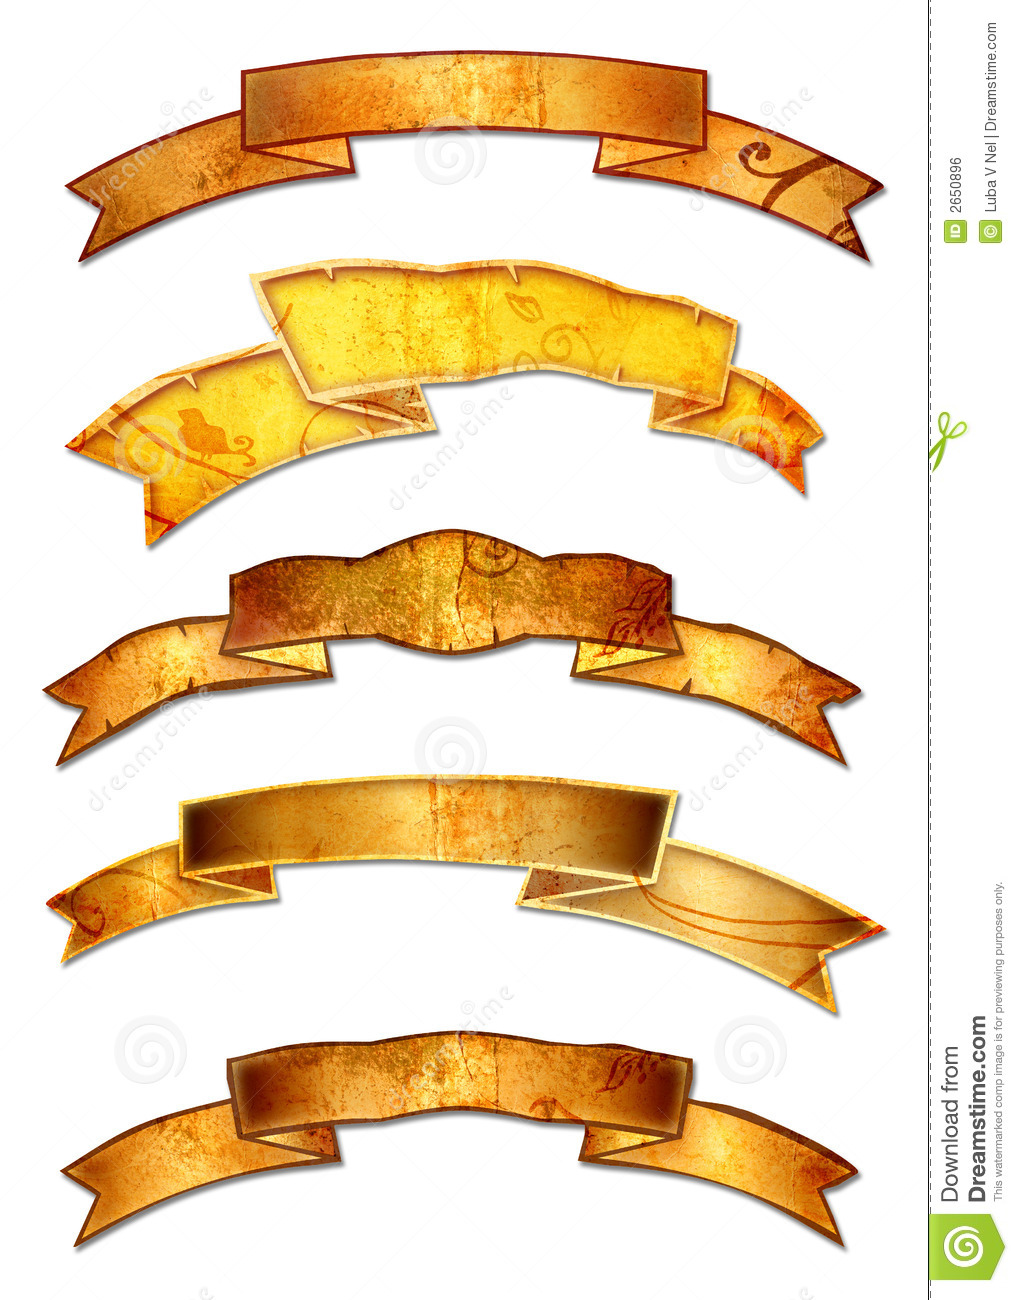 grunge banner designs royalty free stock image image scroll clipart with bird scroll clip art cnc